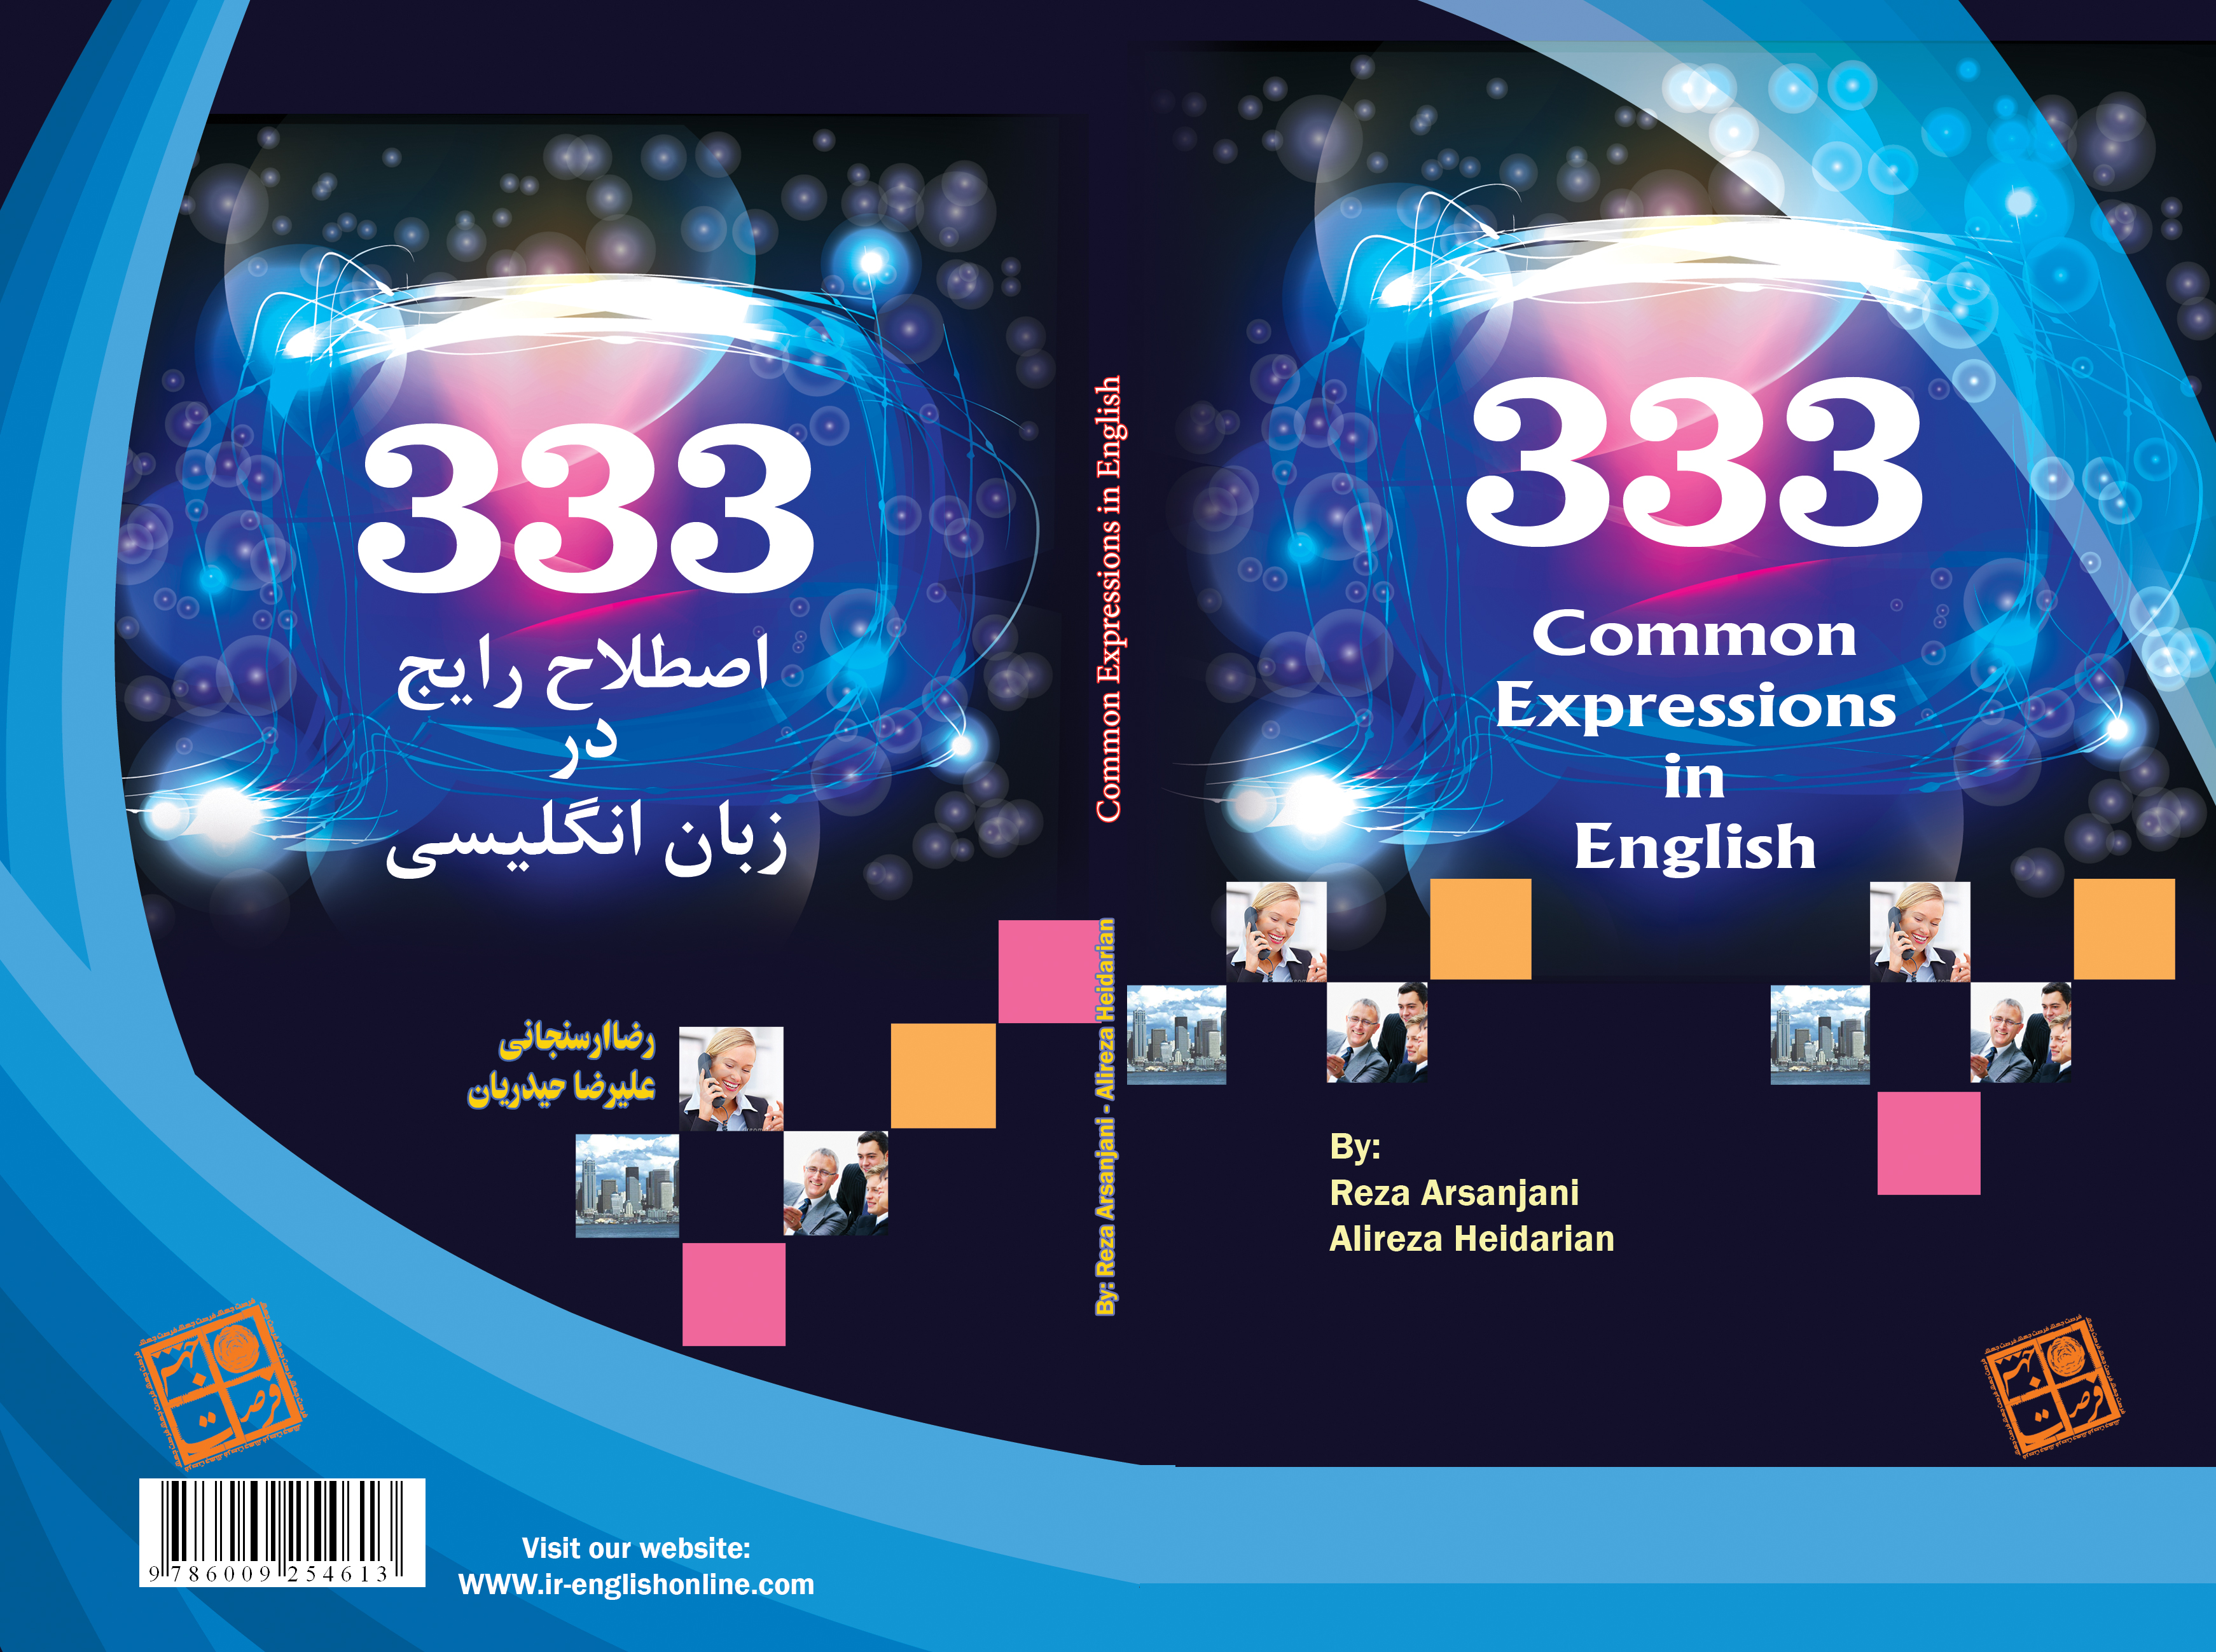 333 common expressions in English